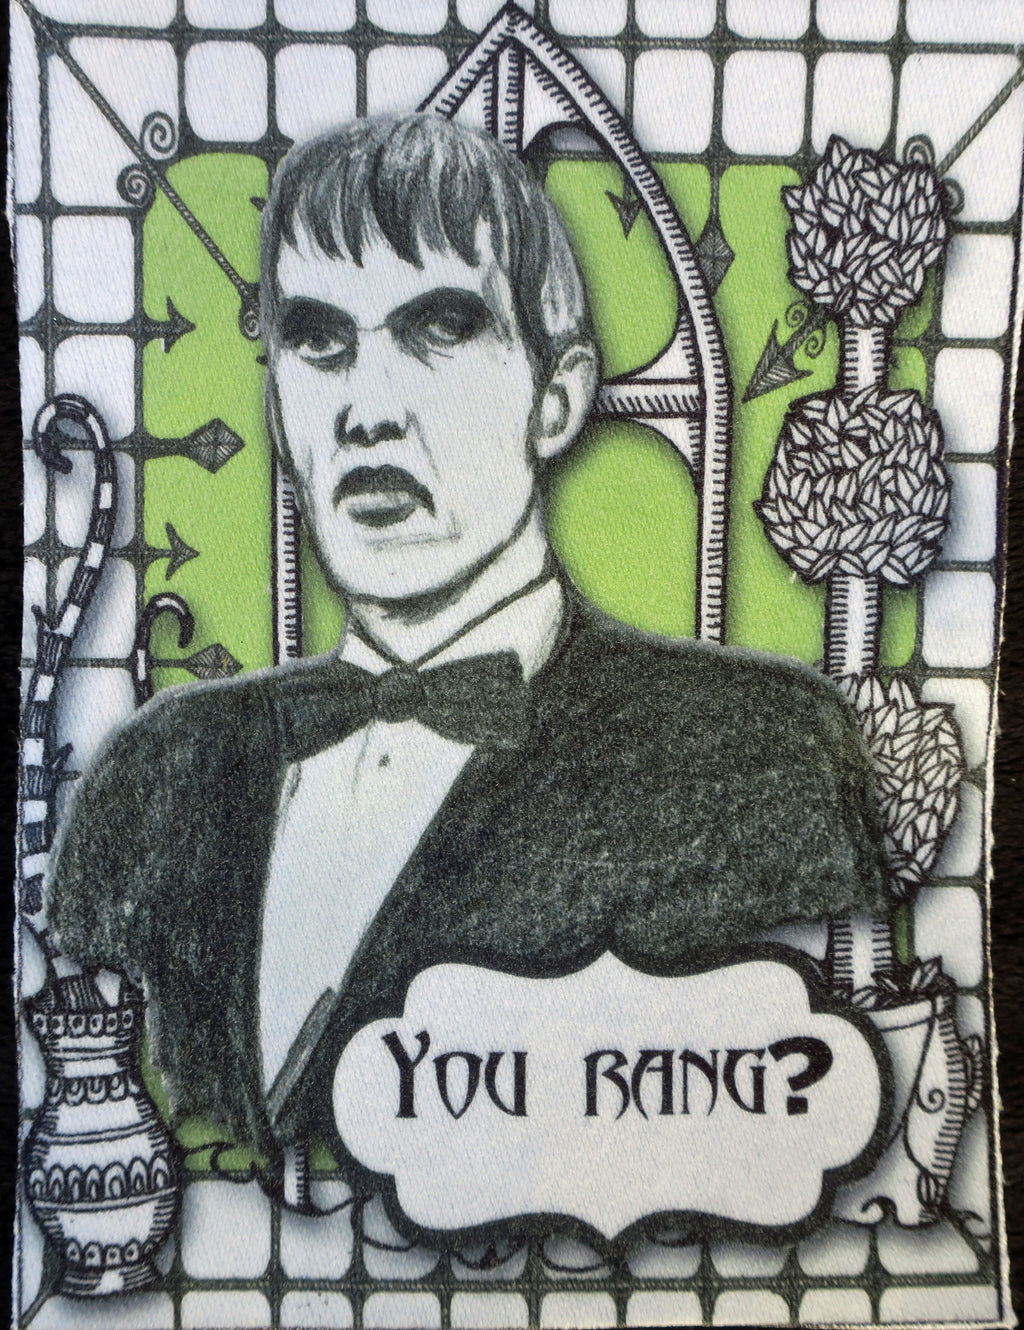 addams family lurch you rang fabric patch